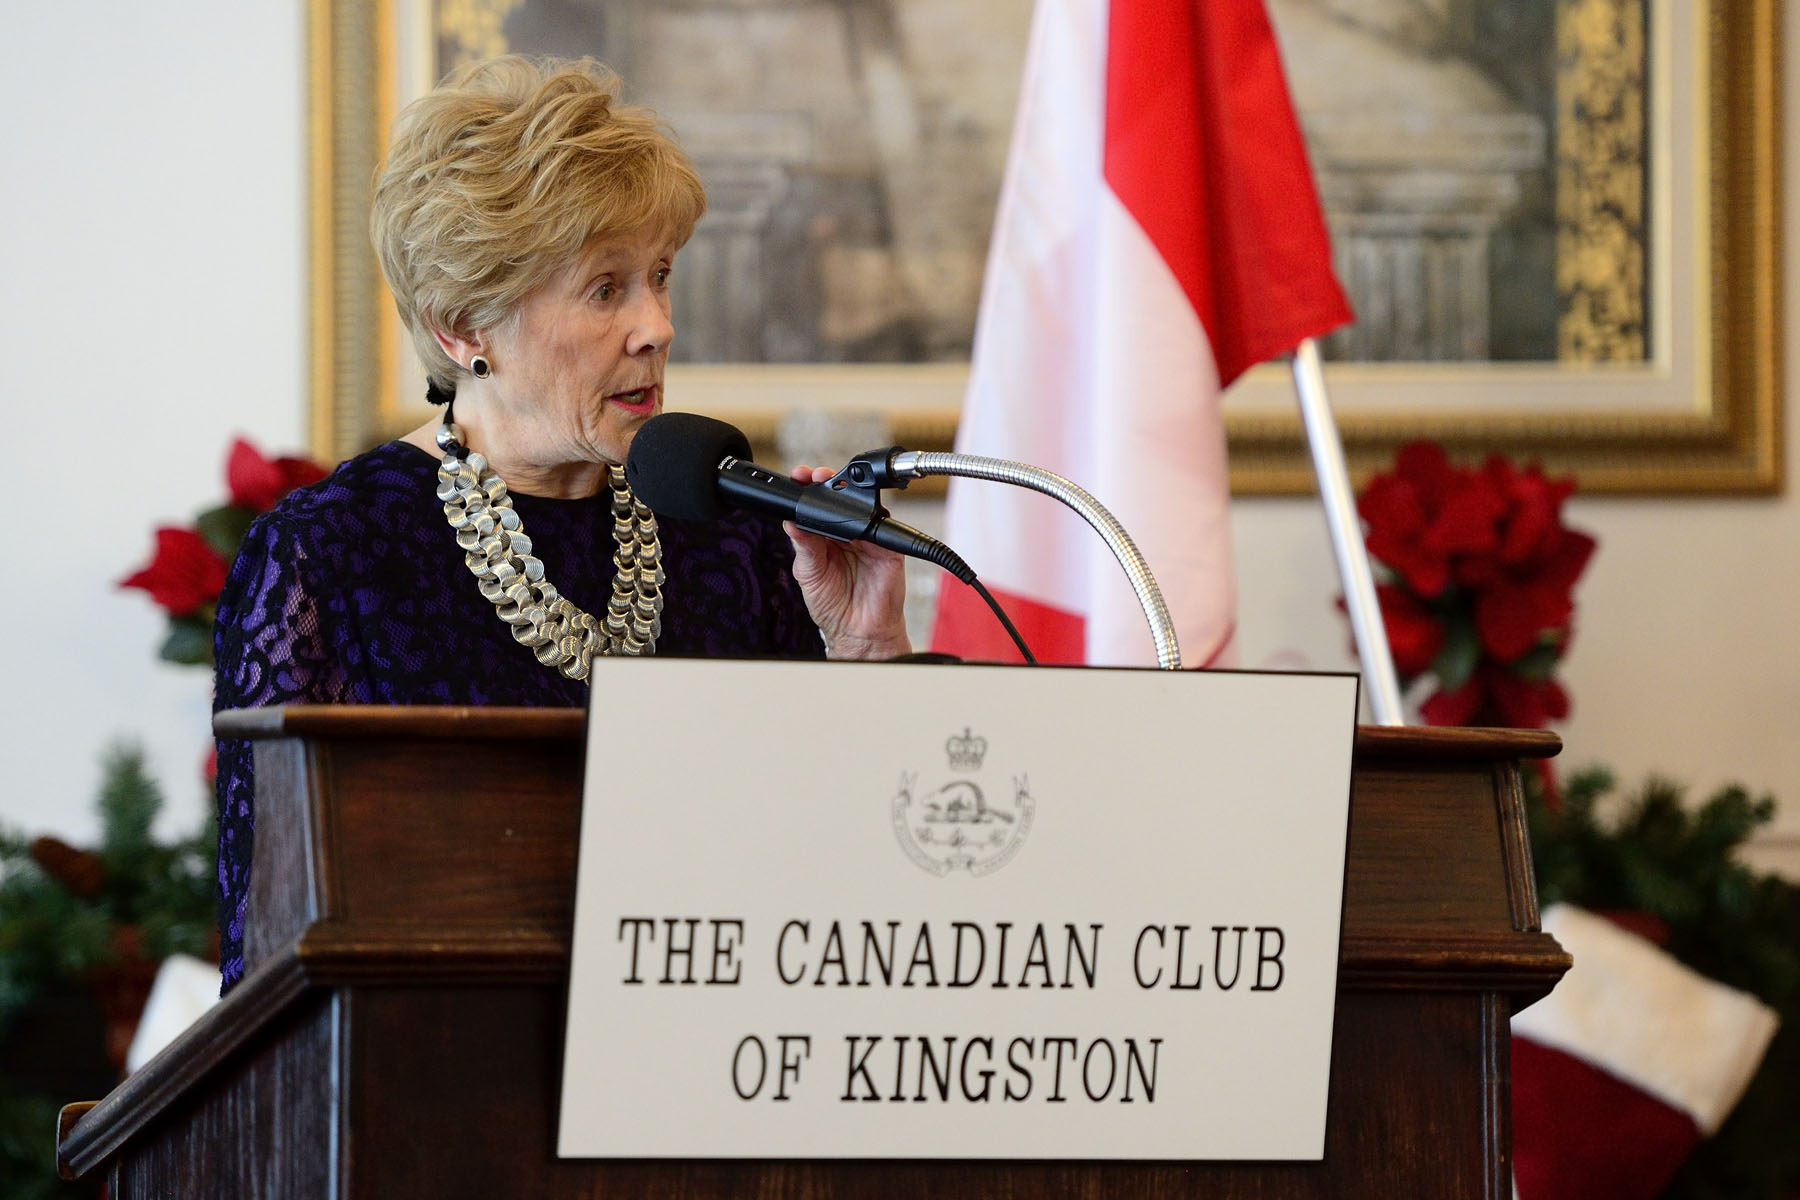 Mrs. Johnston spoke about her role as the Governor General's spouse and about mental health, an issue that has come to define her time in office.